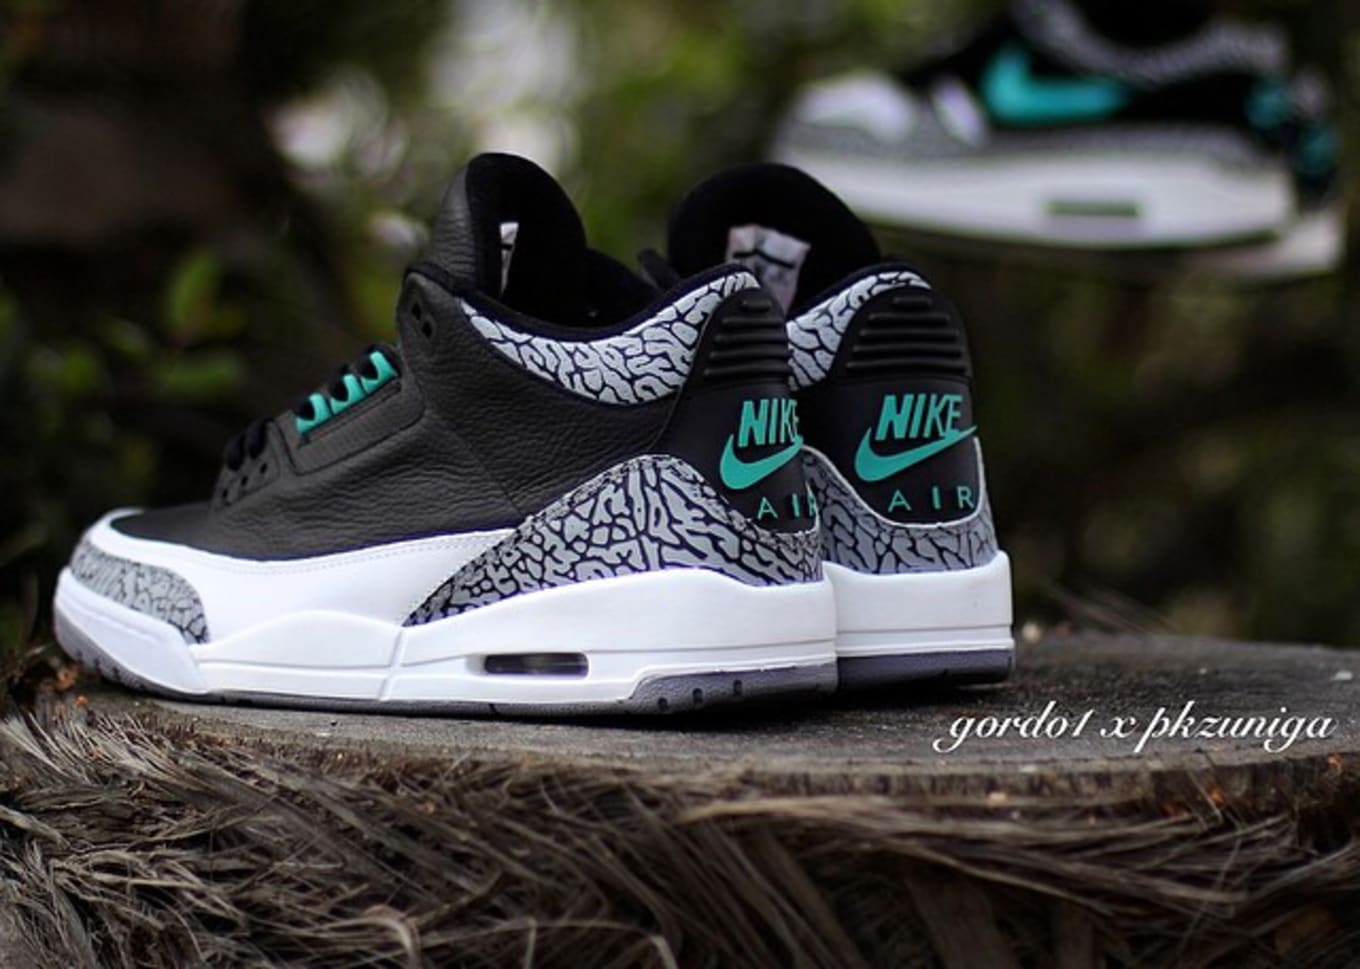 a53c92ca9e9 Atmos Air Jordan 3 Nike Air Max 1 Air Max Day | Sole Collector